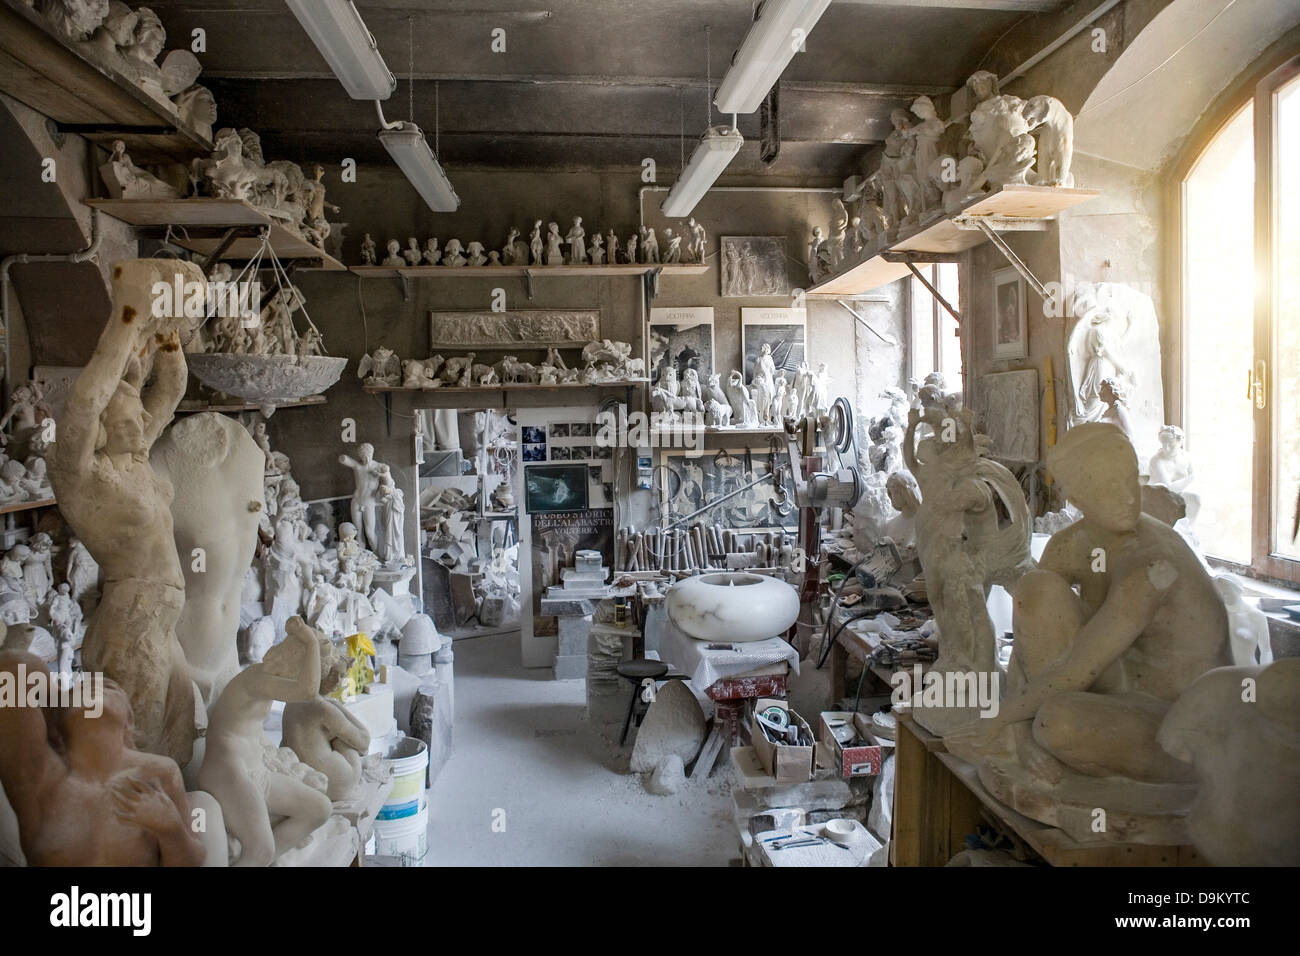 Large group of art and sculpture in artist's studio - Stock Image